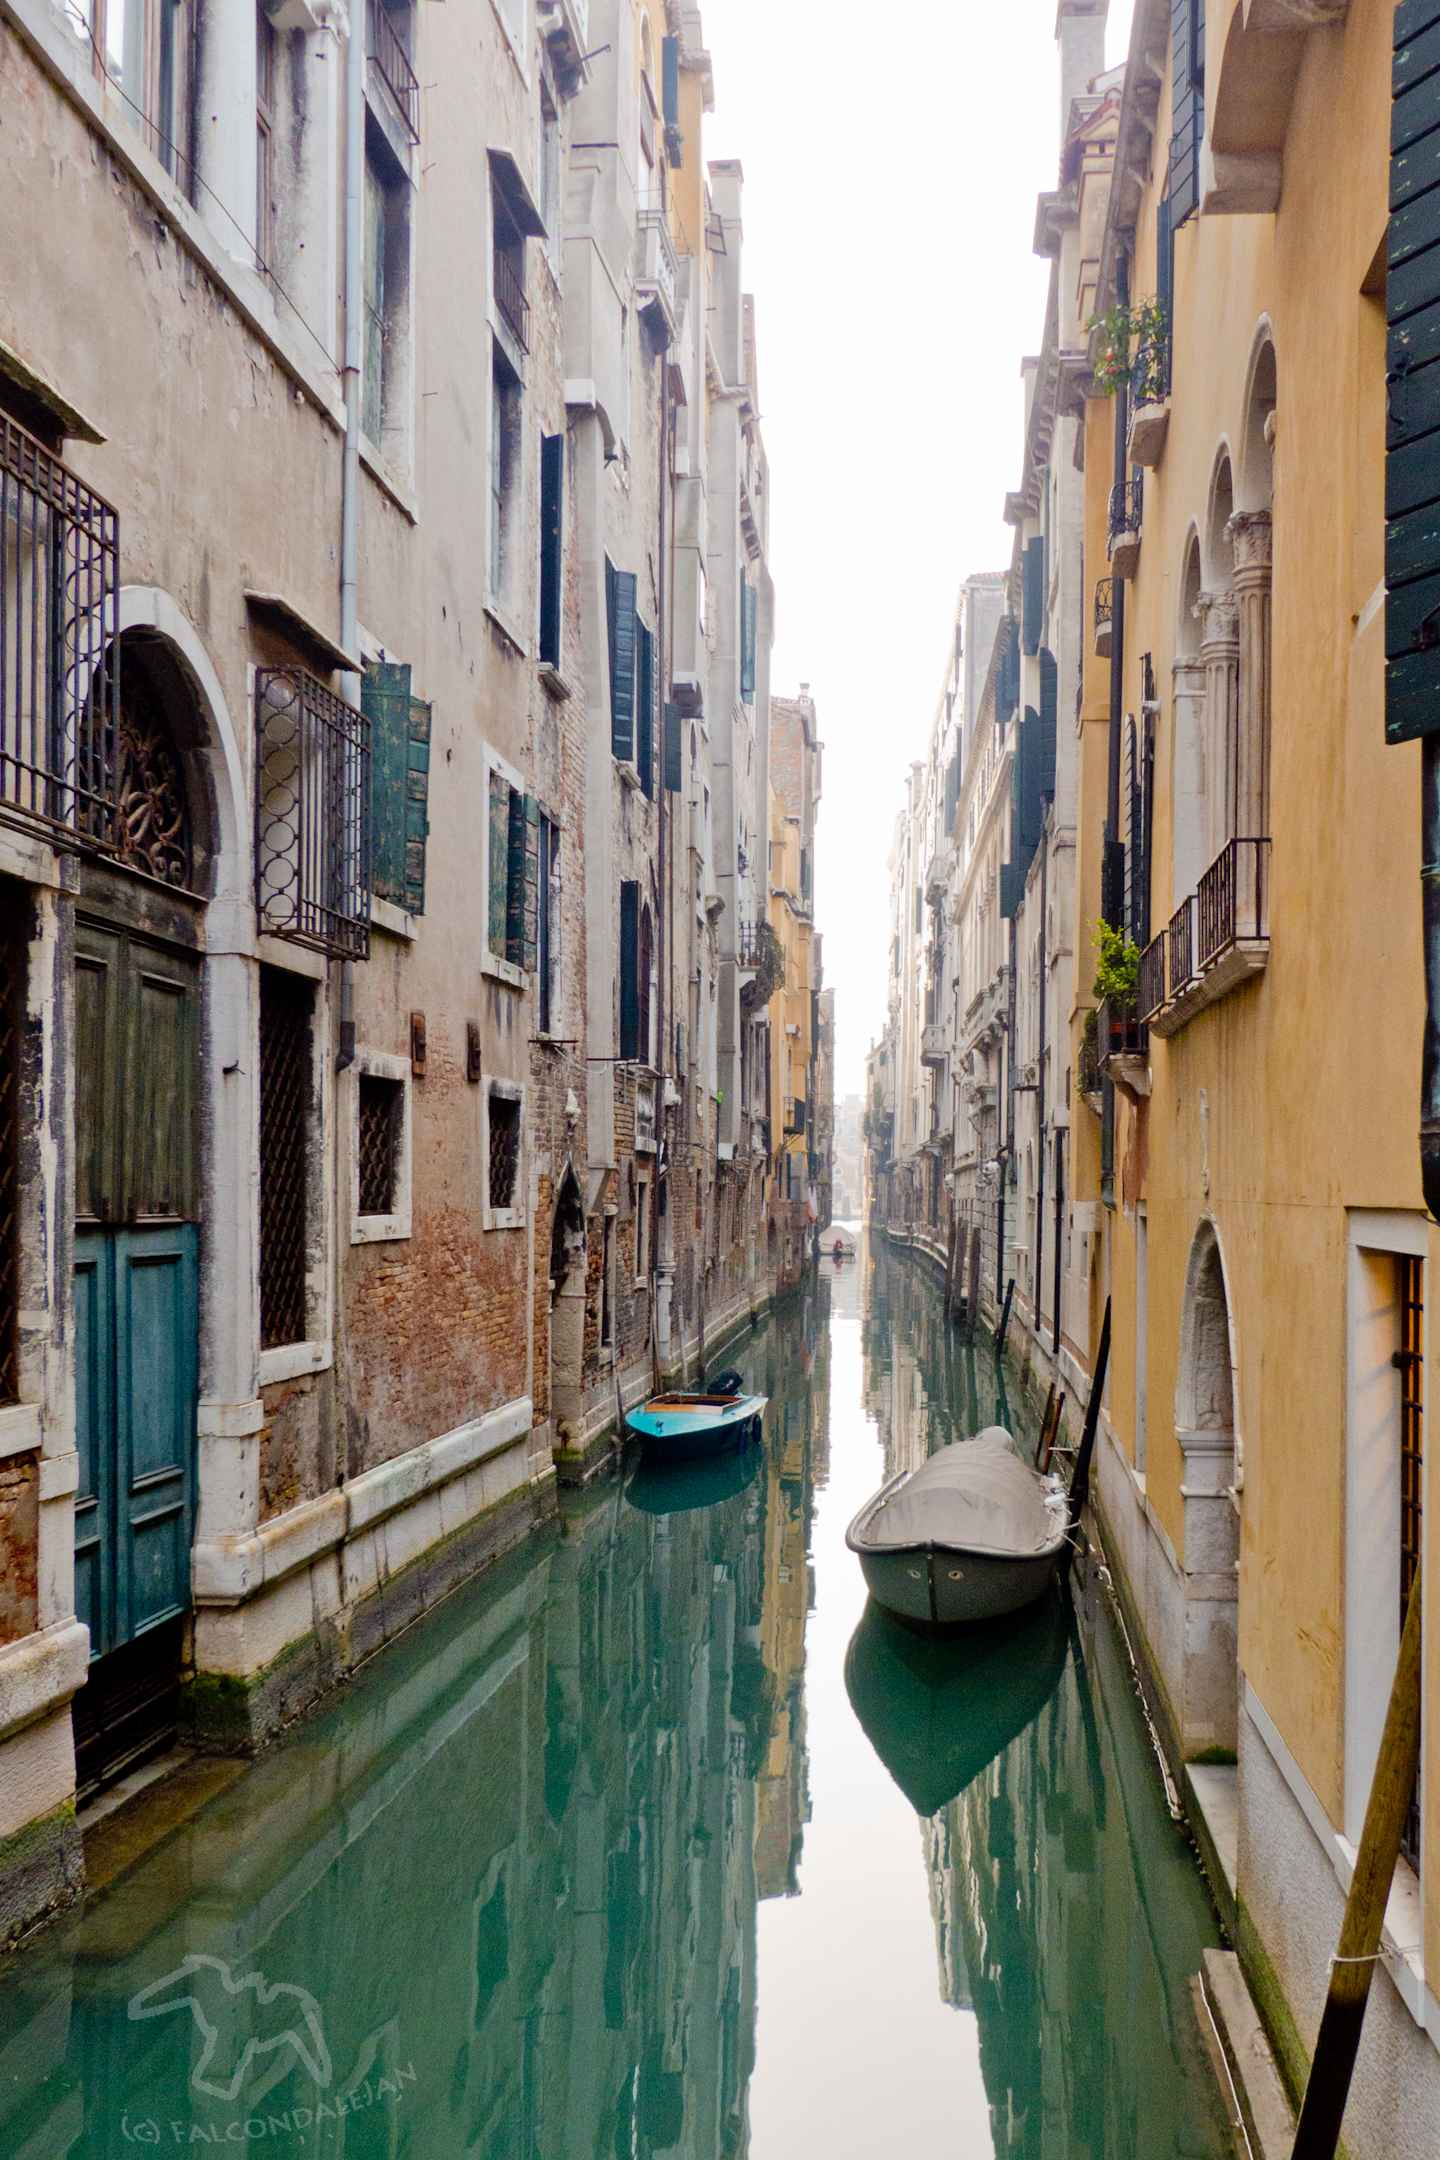 Can parents find romance in Venice with kids in tow or is it best to go without the children? Tips for Mums and Dads visiting the world's most romantic city. Plan a romantic trip to Venice with kids in tow on Falcondale Life blog. Image description: small canal in Venice